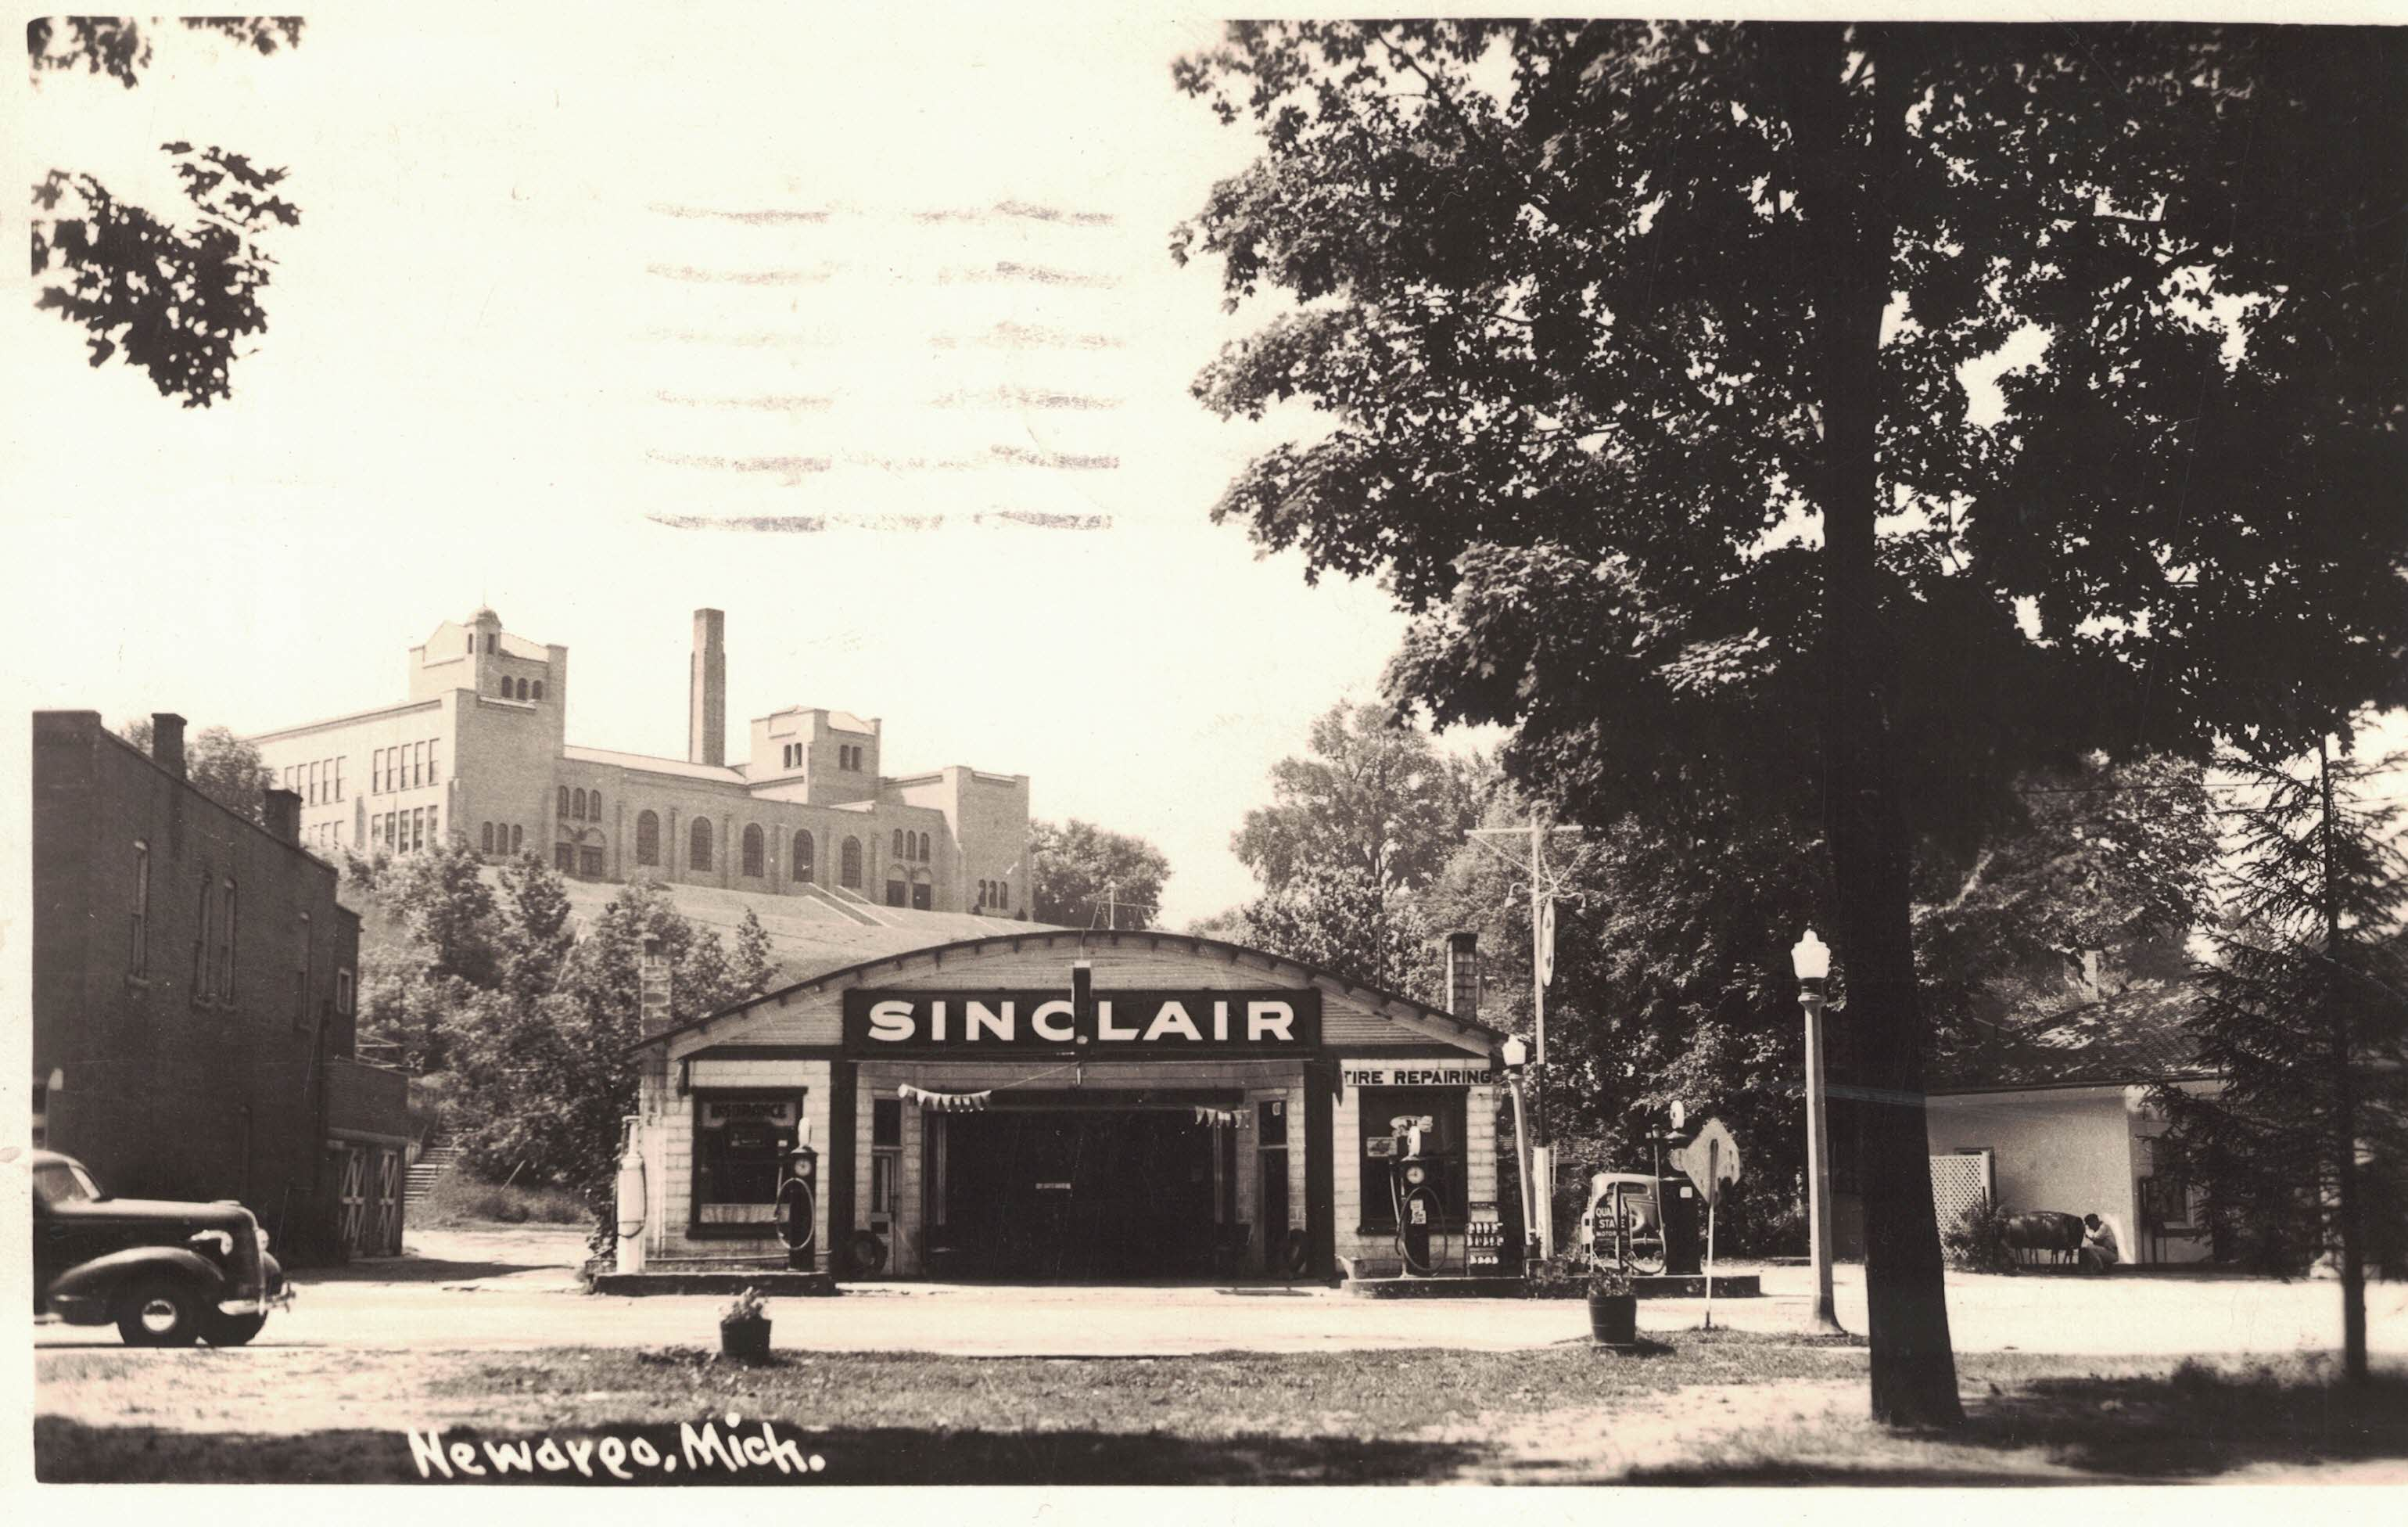 Newaygo,MI Sinclair Gas Statio 1941